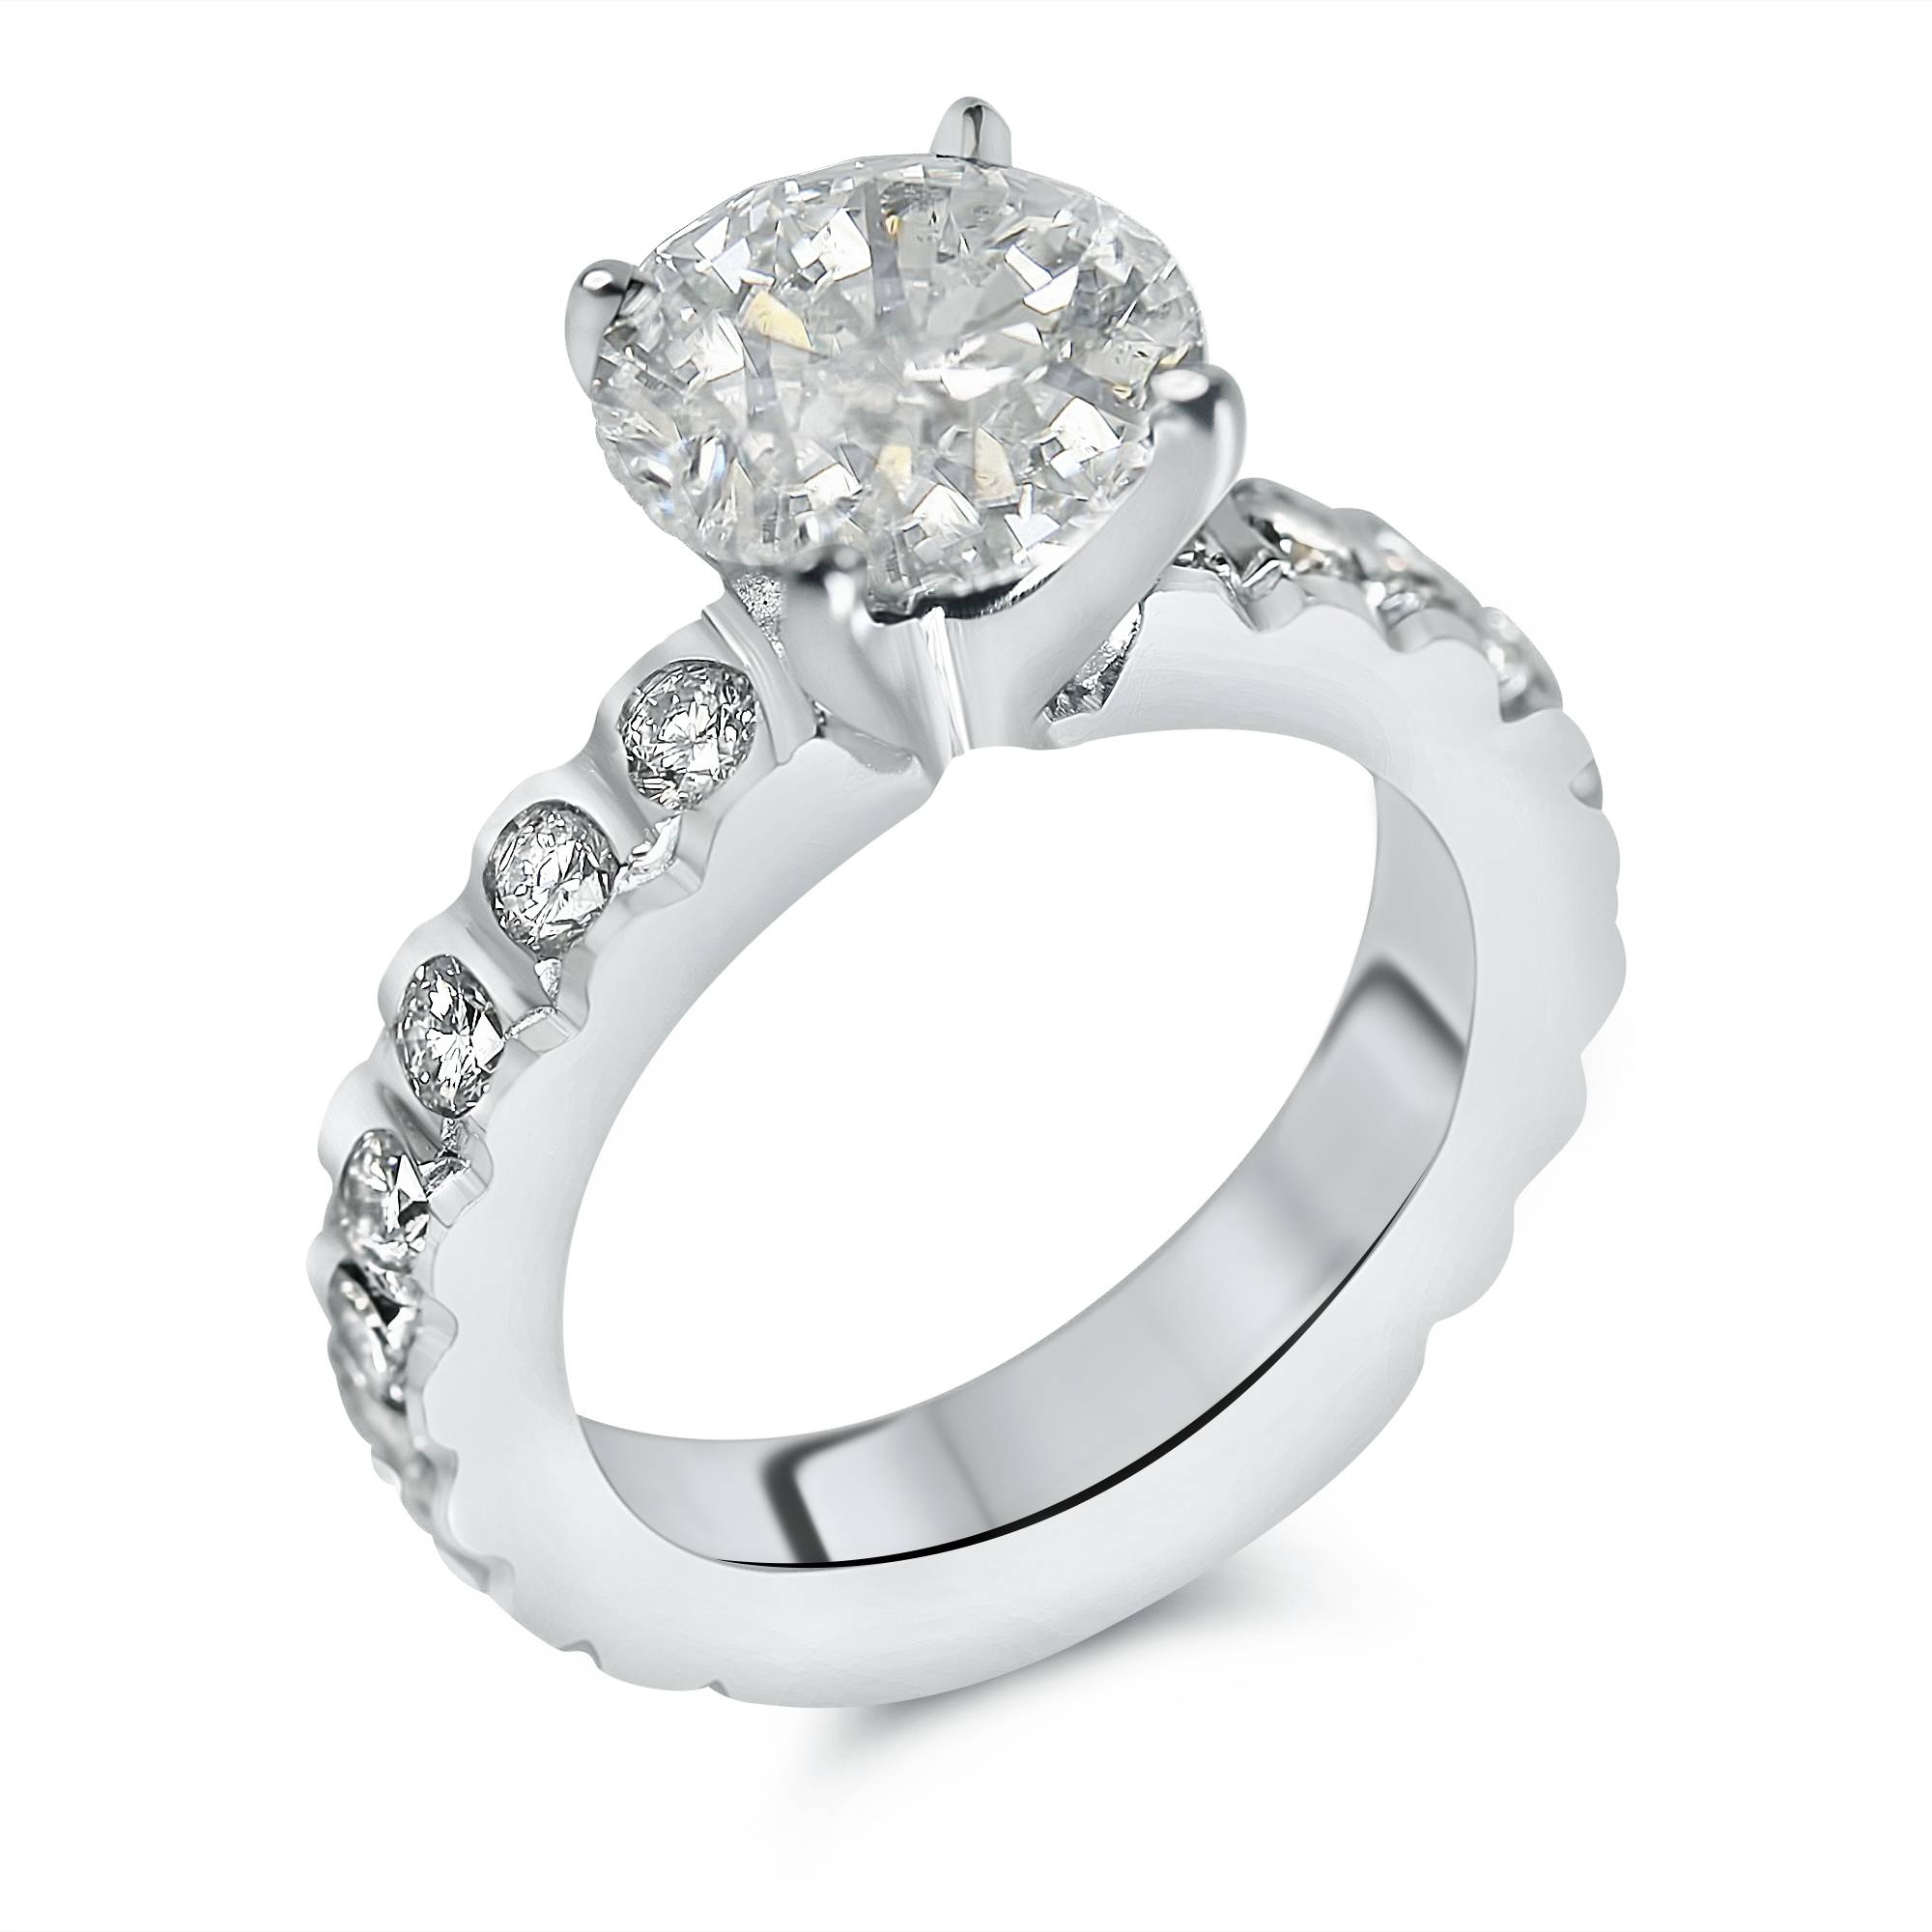 diamond jewelry unique setting jewellery engagement rings settings wise ring